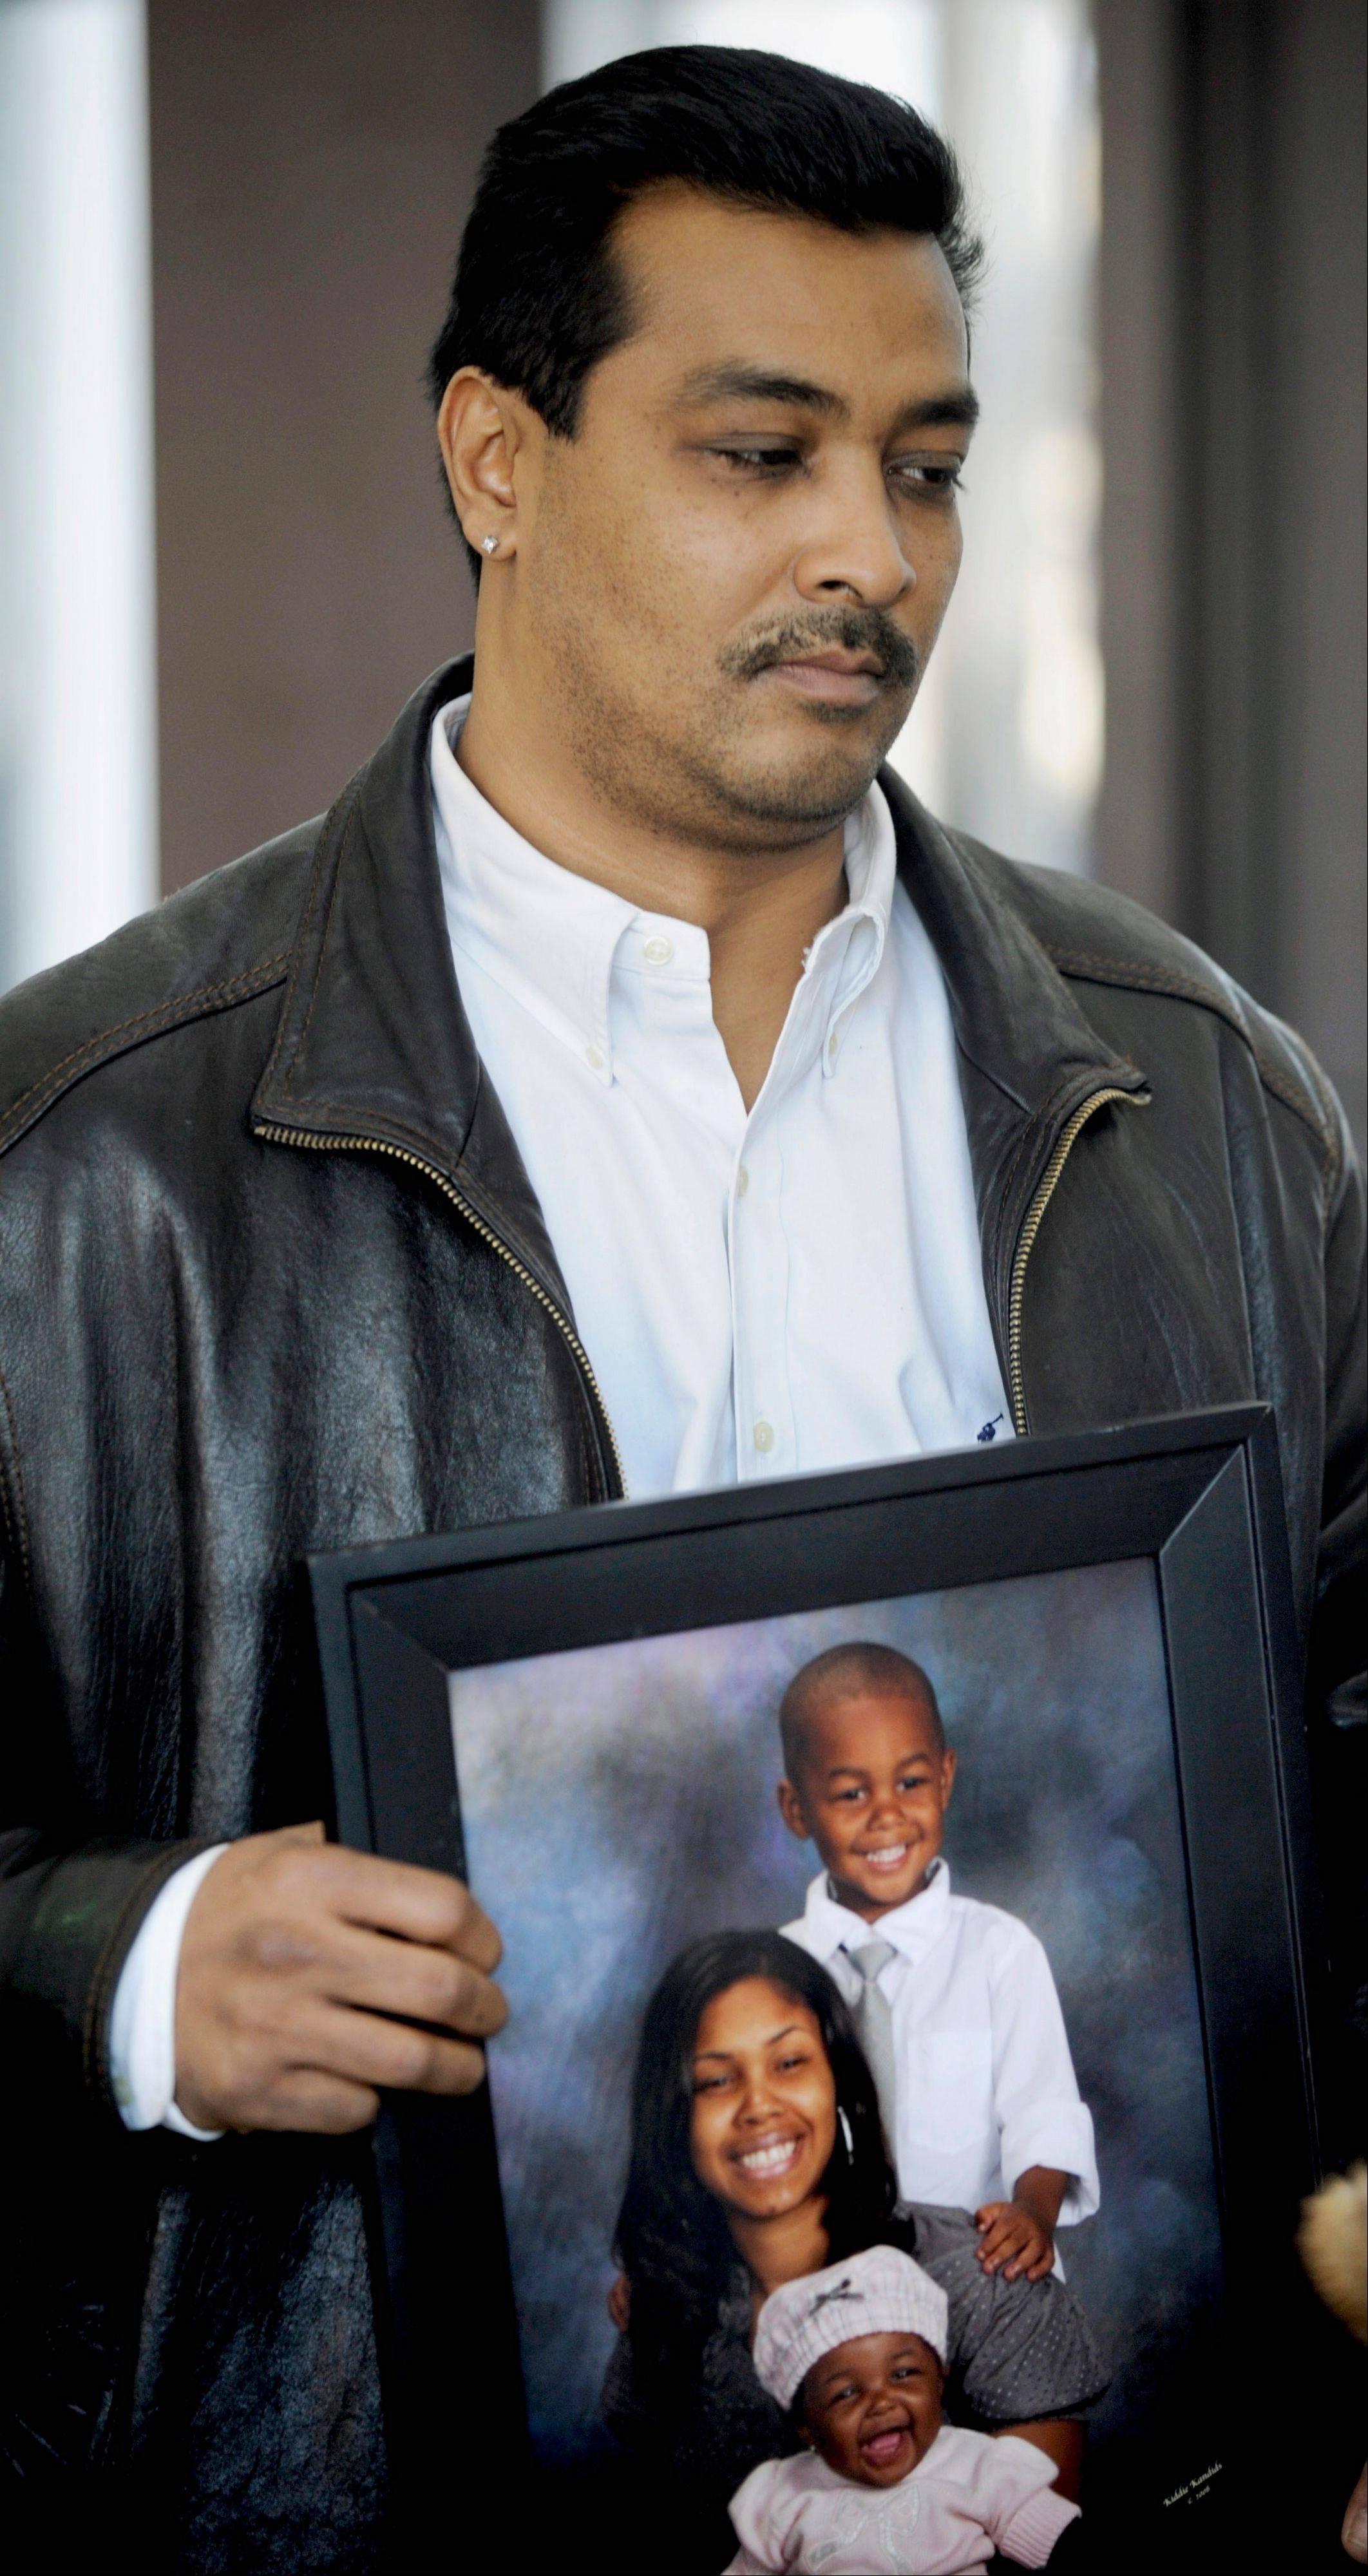 FILE - In this Feb. 23, 2009 file photo, Keith Henry holds a photo of his daughter Nova Henry, with her daughter Ava and son at the Cook County Courthouse in Chicago. Chicago attorney Fredrick Goings, who was convicted in the January 2009 slayings of Nova and daughter Ava, the ex-girlfriend and daughter of former NBA center Eddy Curry, was sentenced Thursday, April 4, 2013, to life in prison. Goings represented Henry in a child custody case against Curry, and was romantically involved with her. (AP Photo/Paul Beaty, File)